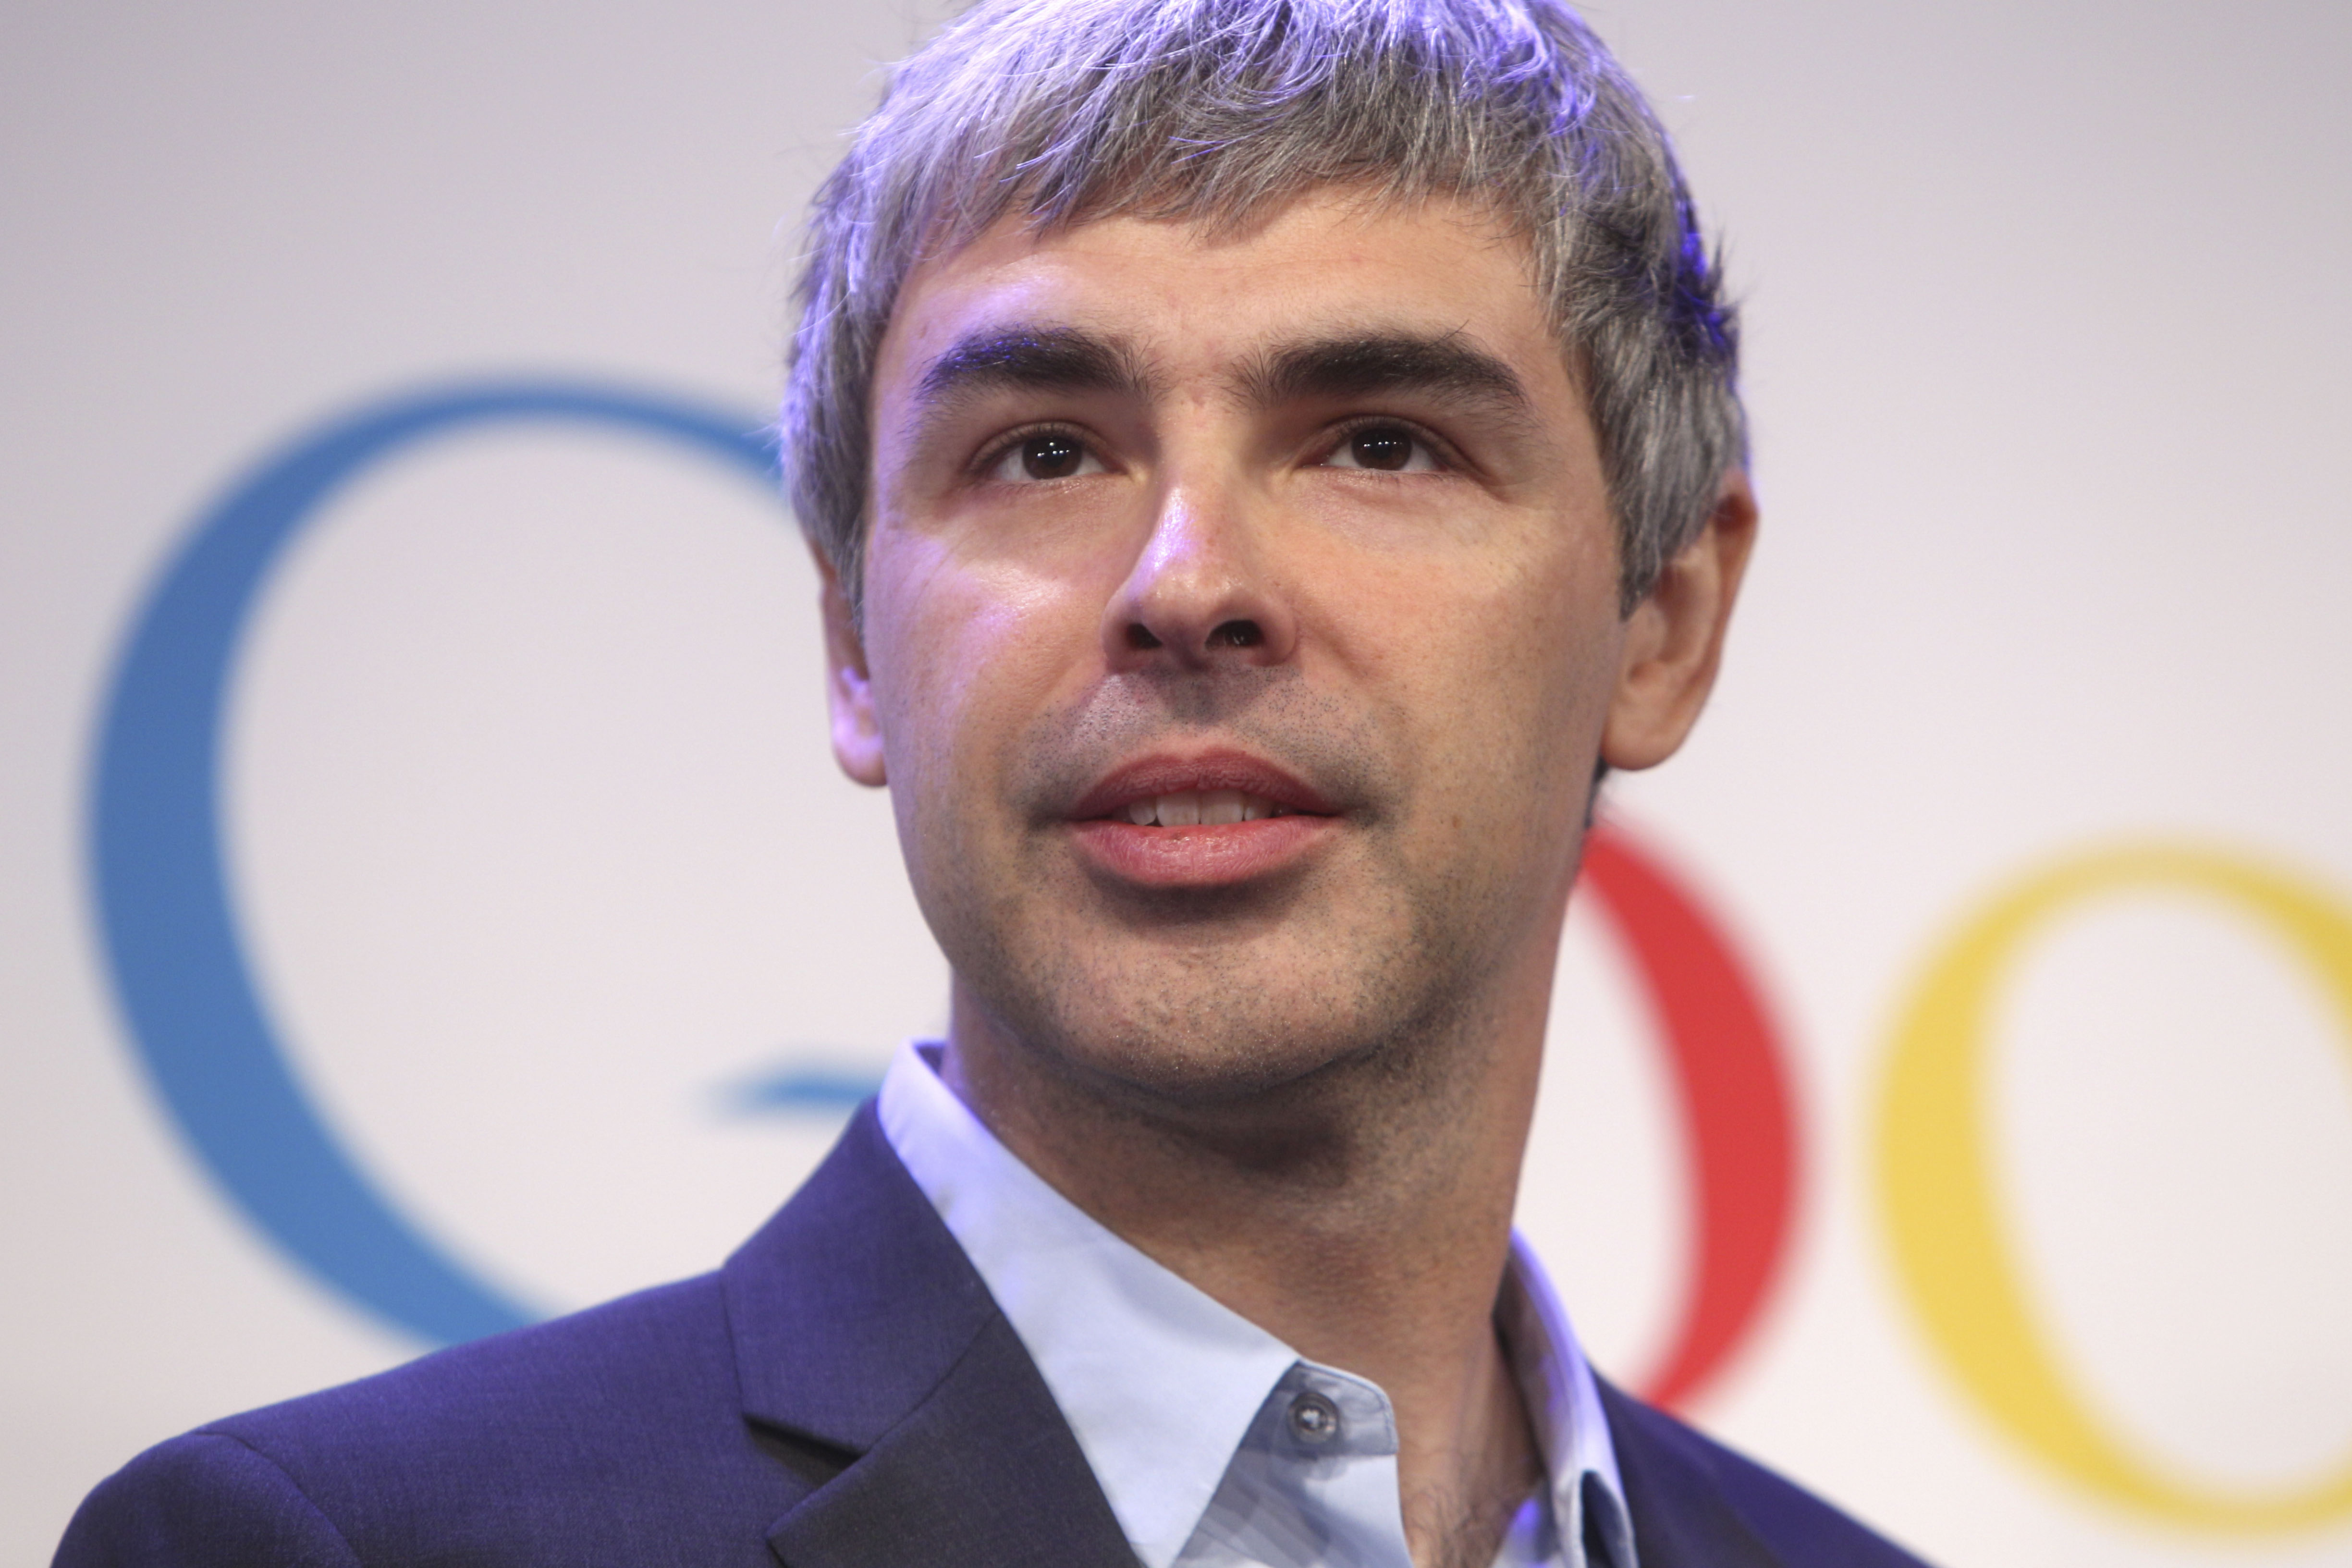 Google CEO Larry Page speaks at a news conference at the Google offices in New York, Monday, May 21, 2012. (AP Photo/Seth Wenig)